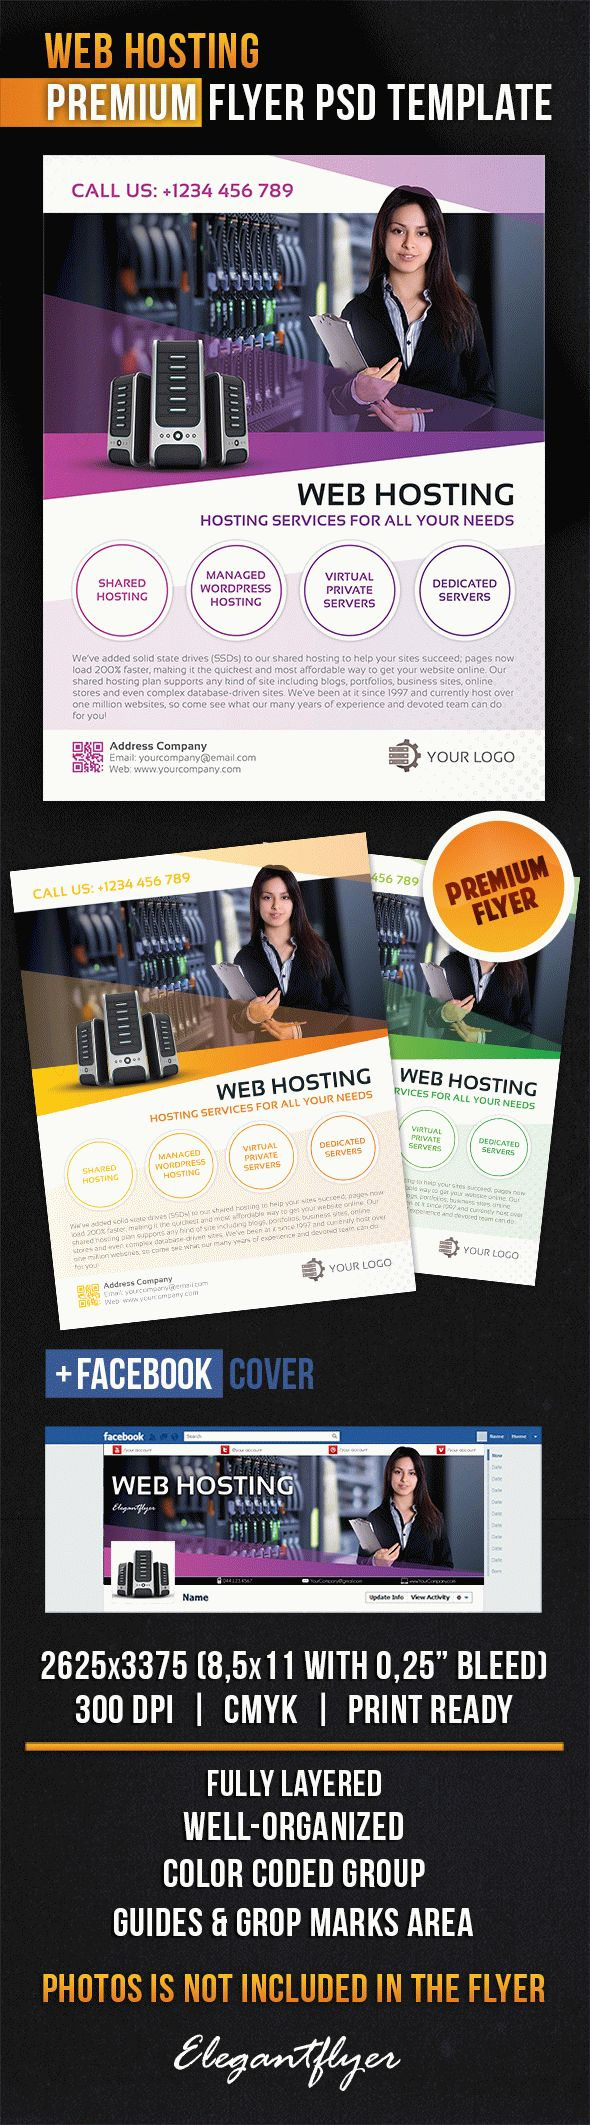 Web Hosting – Flyer PSD Template + Facebook Cover